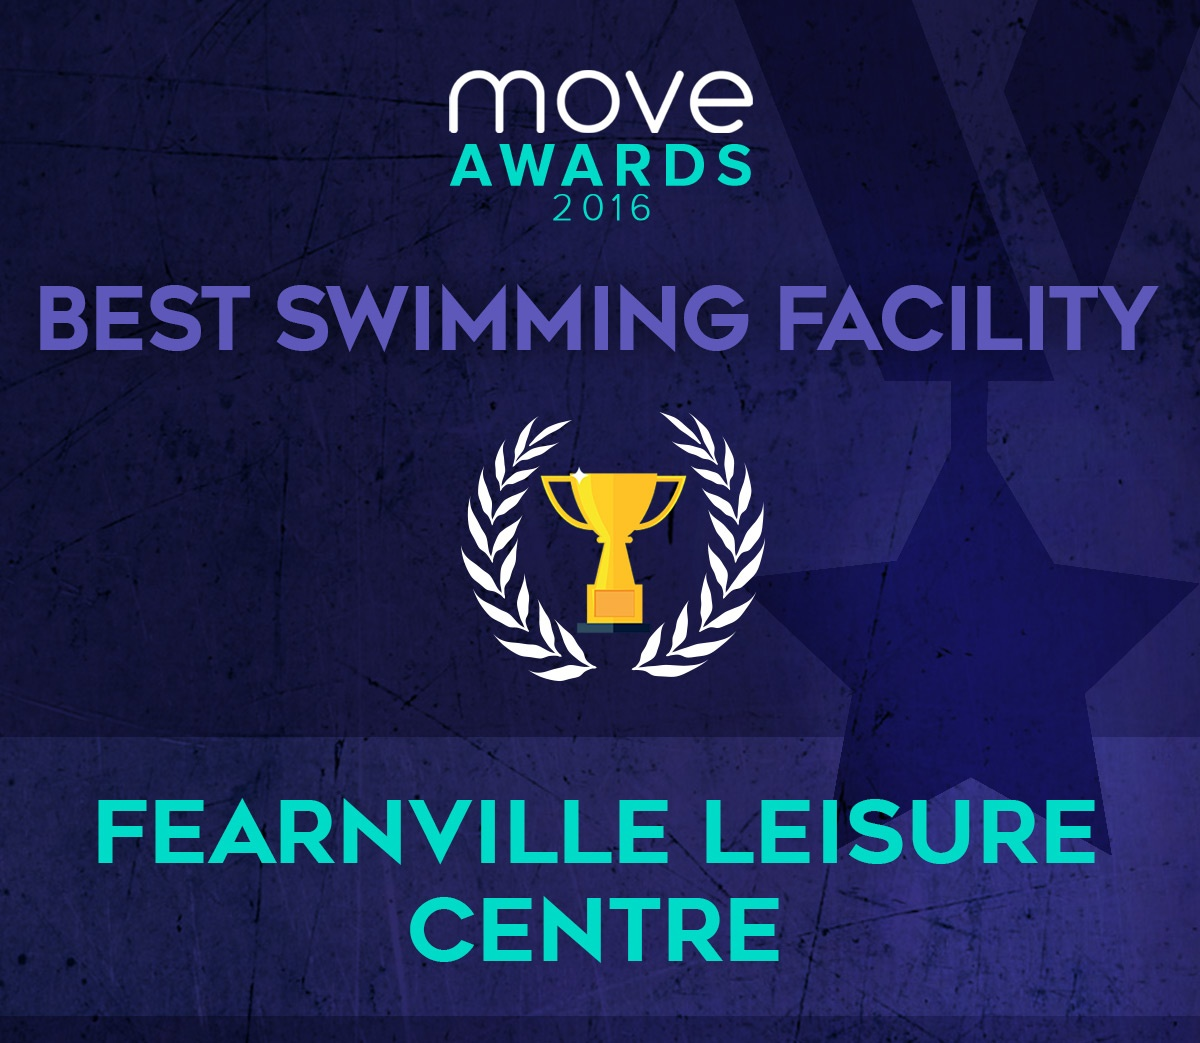 Best-Swimming-Facility-Leeds.jpg